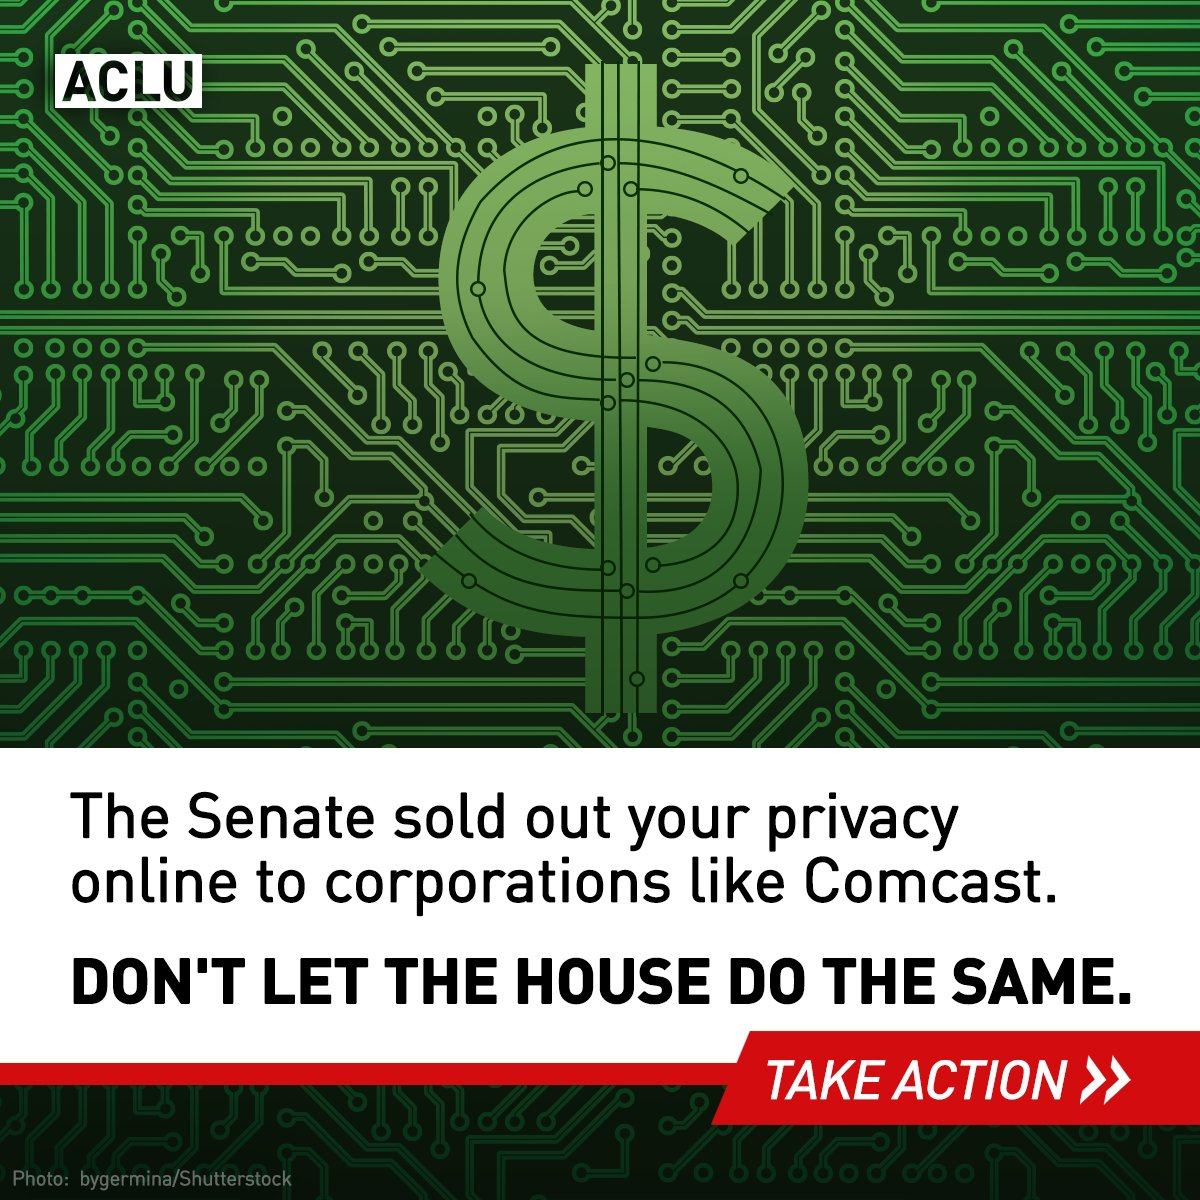 House votes tomorrow on (anti) #broadbandprivacy bill. Call your rep!...